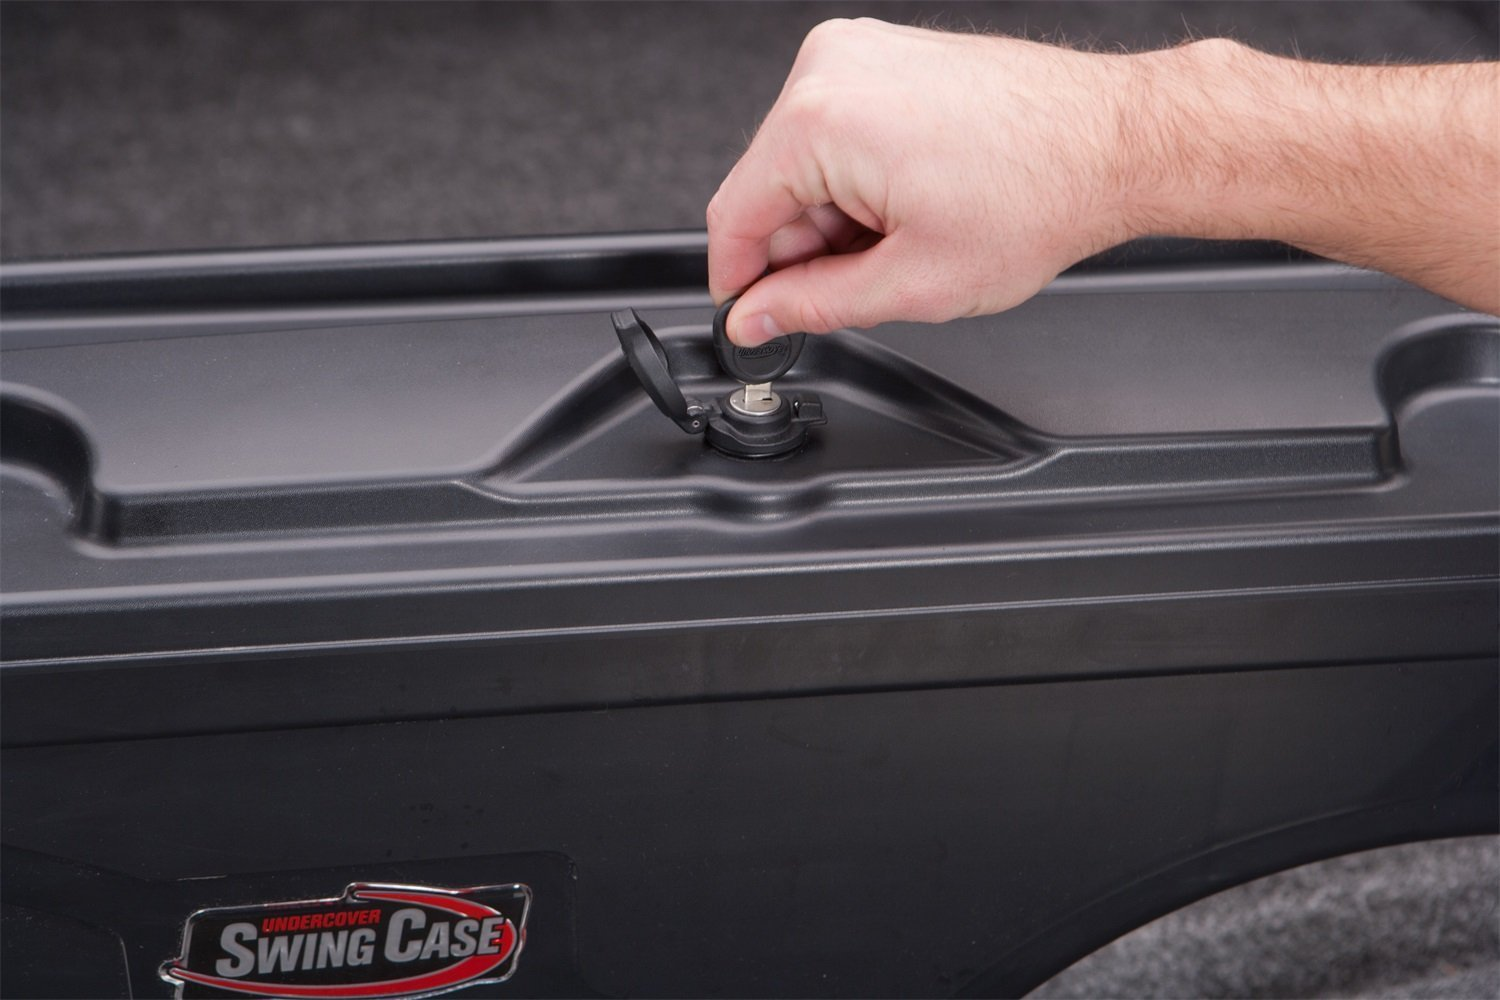 Undercover SC200D SC200P Set of Driver /& Passenger Side Black Swing Case Storage Boxes for Ford F-350 Super Duty